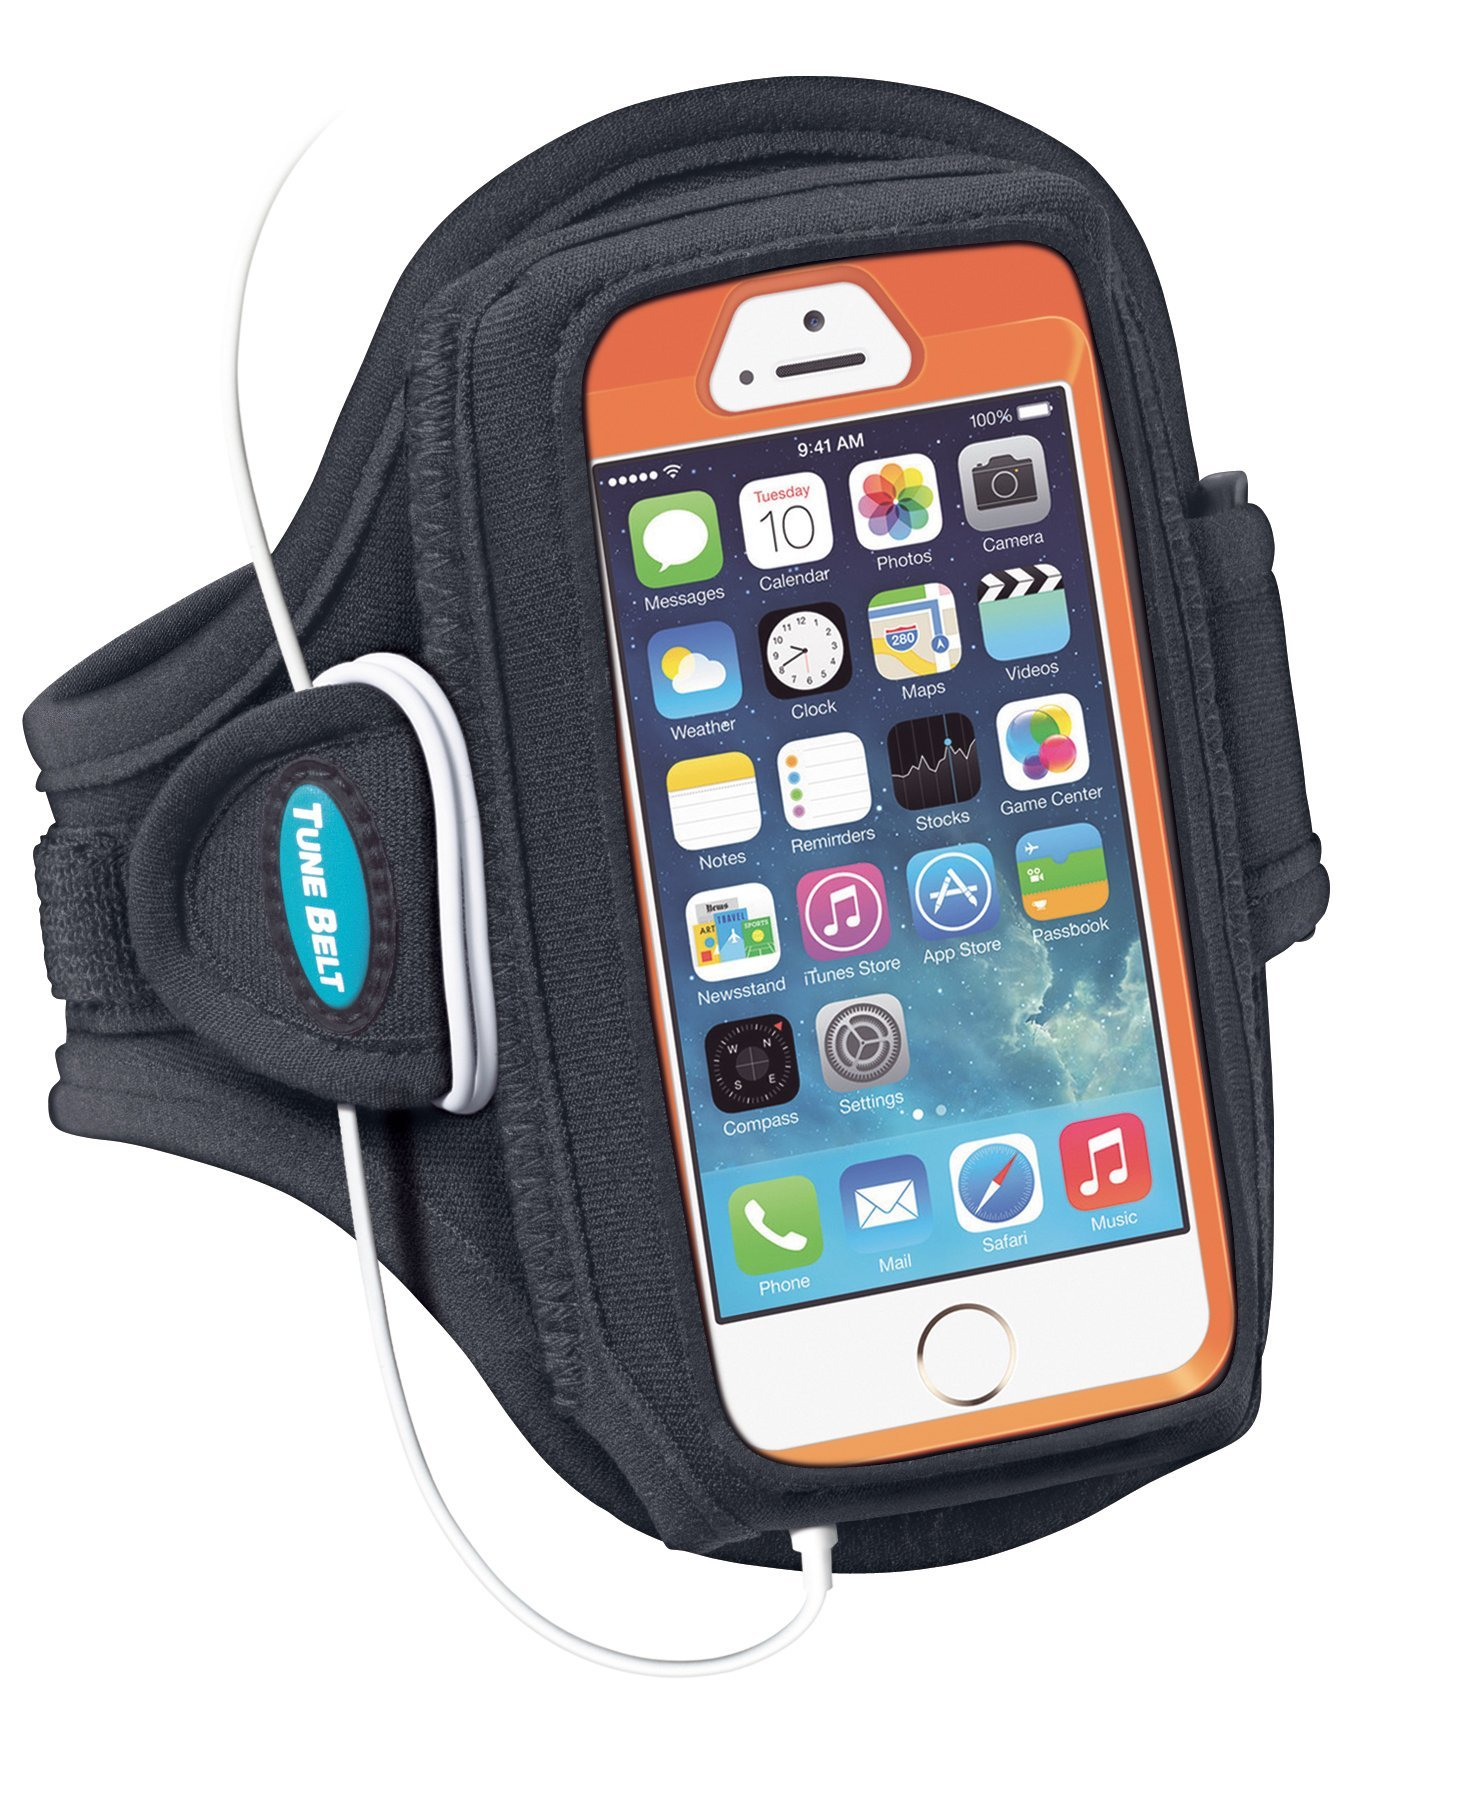 Armband for iPhone SE, 5, 5s, 5c, 4, 4S with OtterBox Defender, Commuter or Other Large Case – Great for Running & Working Out [Black] by Tune Belt (Image #4)